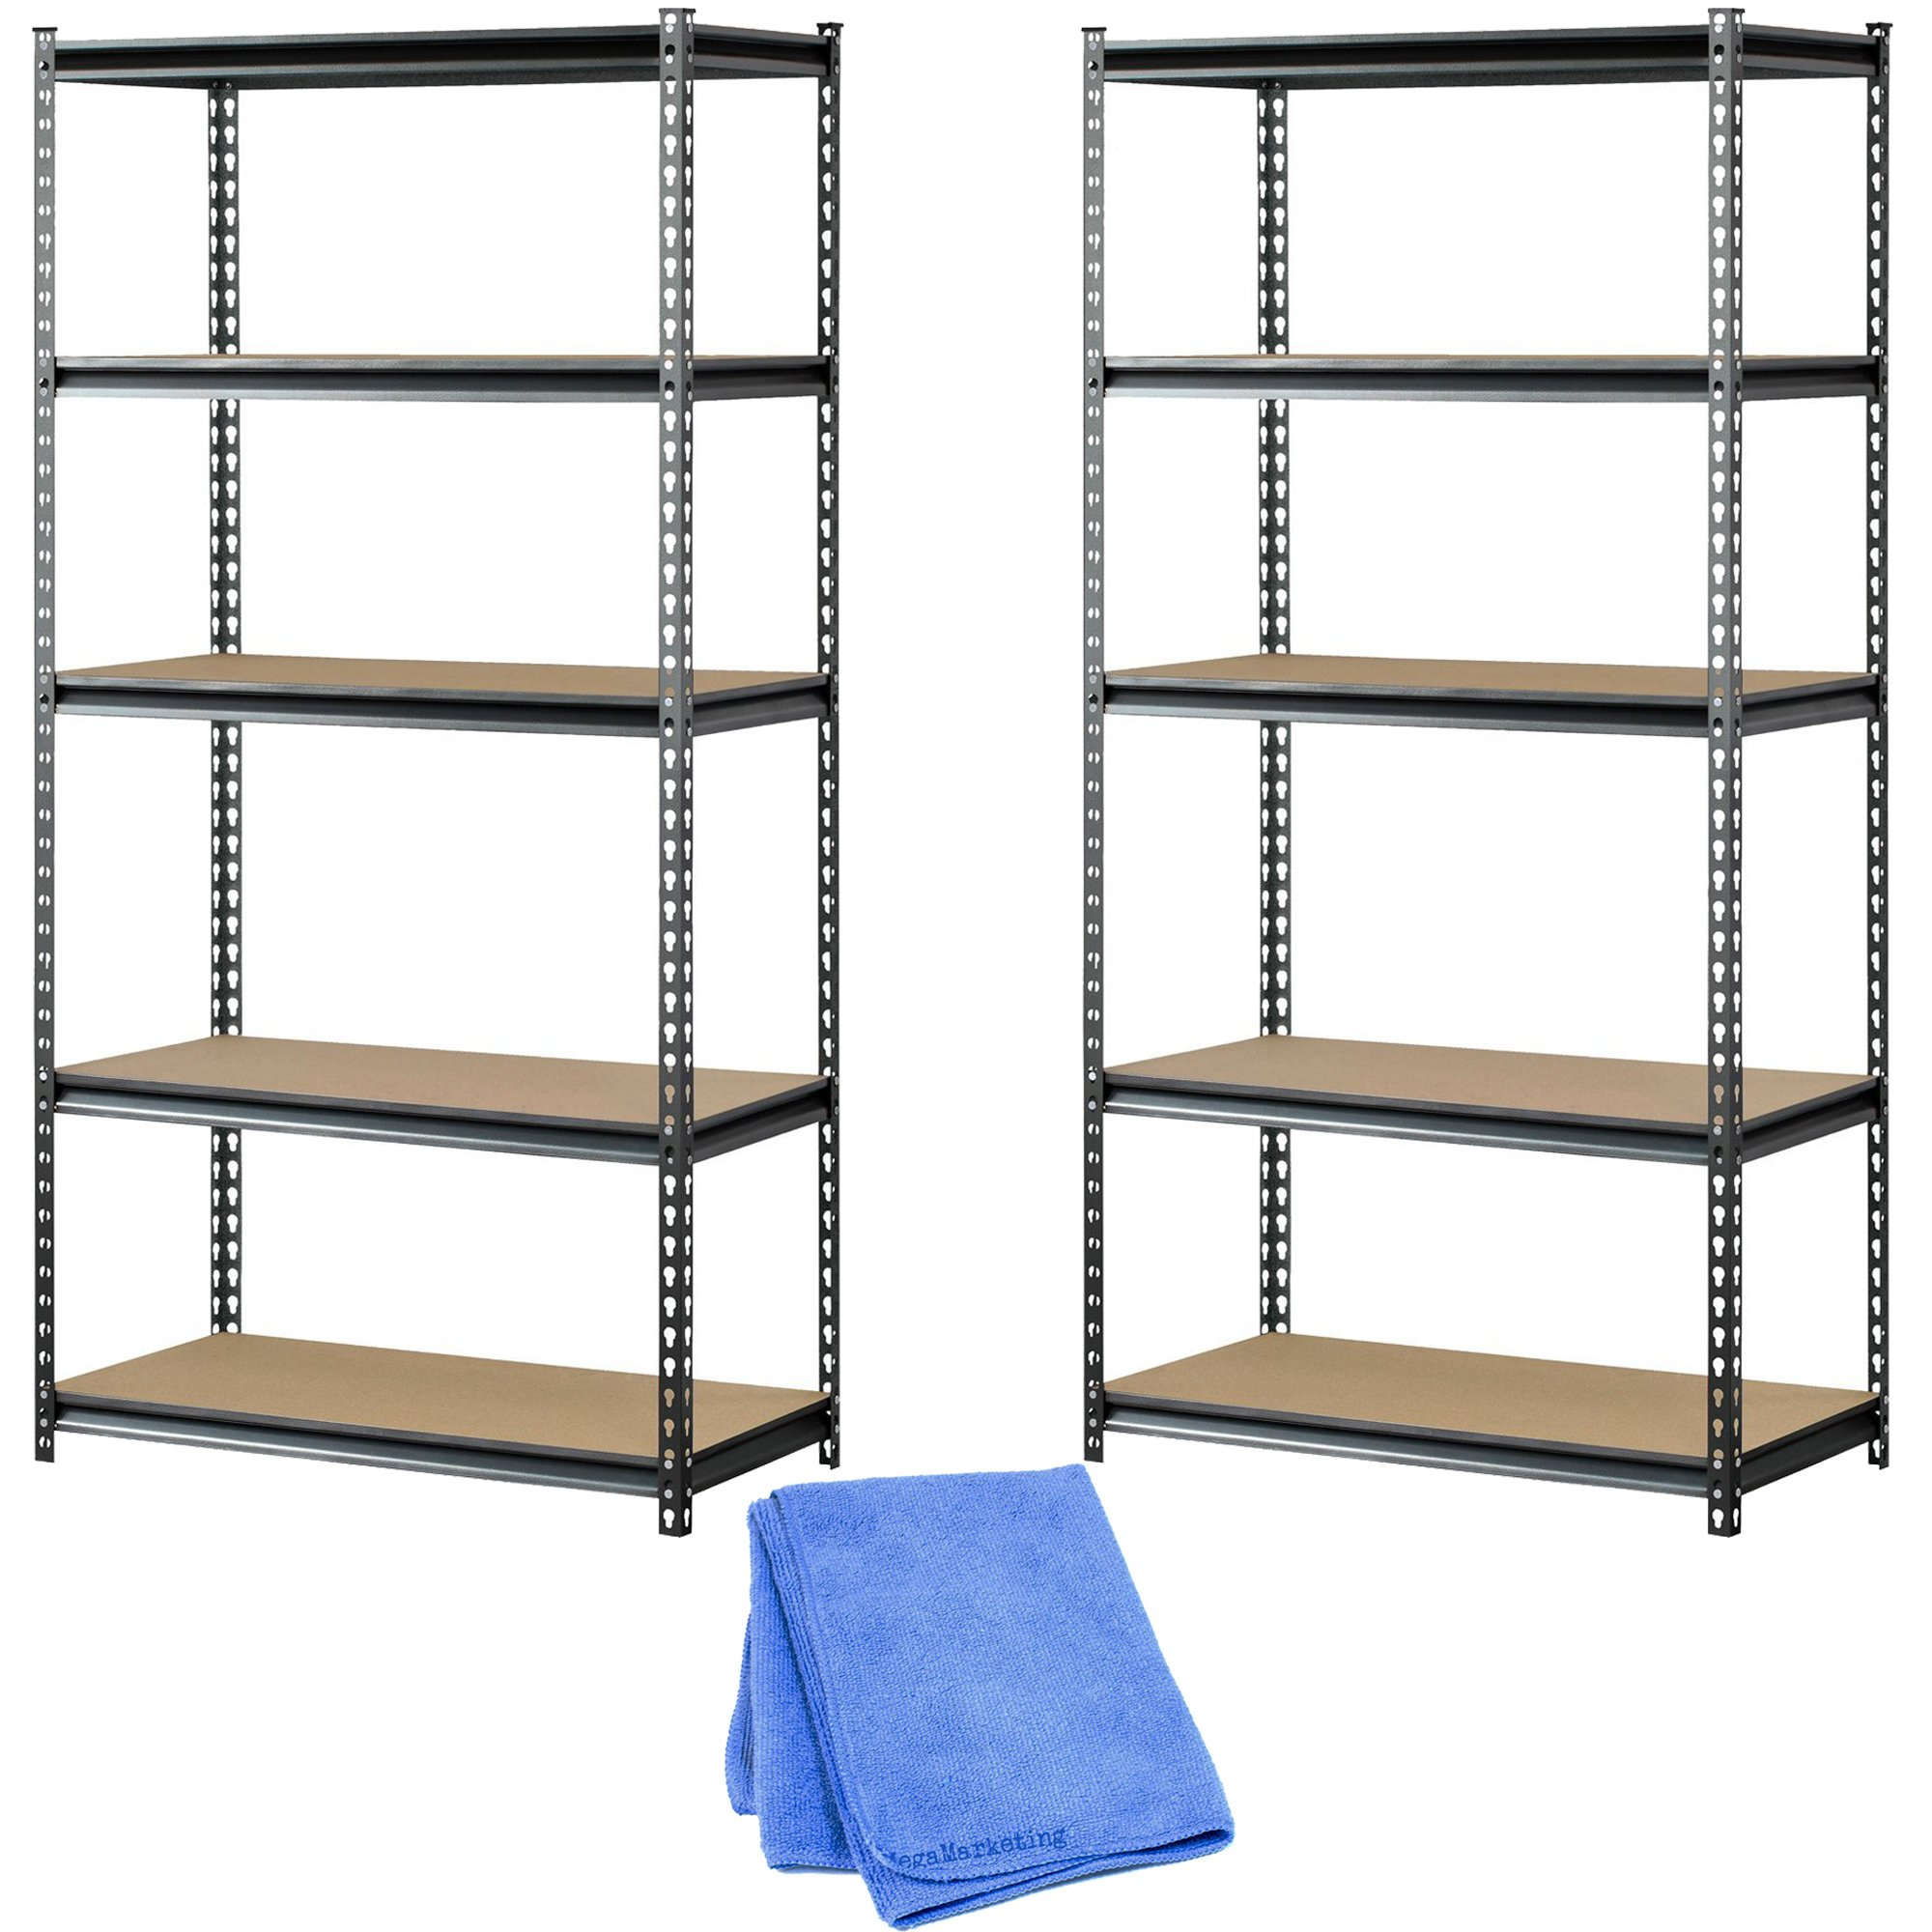 Muscle Rack UR361872PB5PAZ-SV Silver Vein Steel Storage Rack, 5 Adjustable Shelves, 4000 lb. Capacity, 72'' Height x 36'' Width x 18'' Depth (2-Pack) with Dust Cloth by Muscle Rack